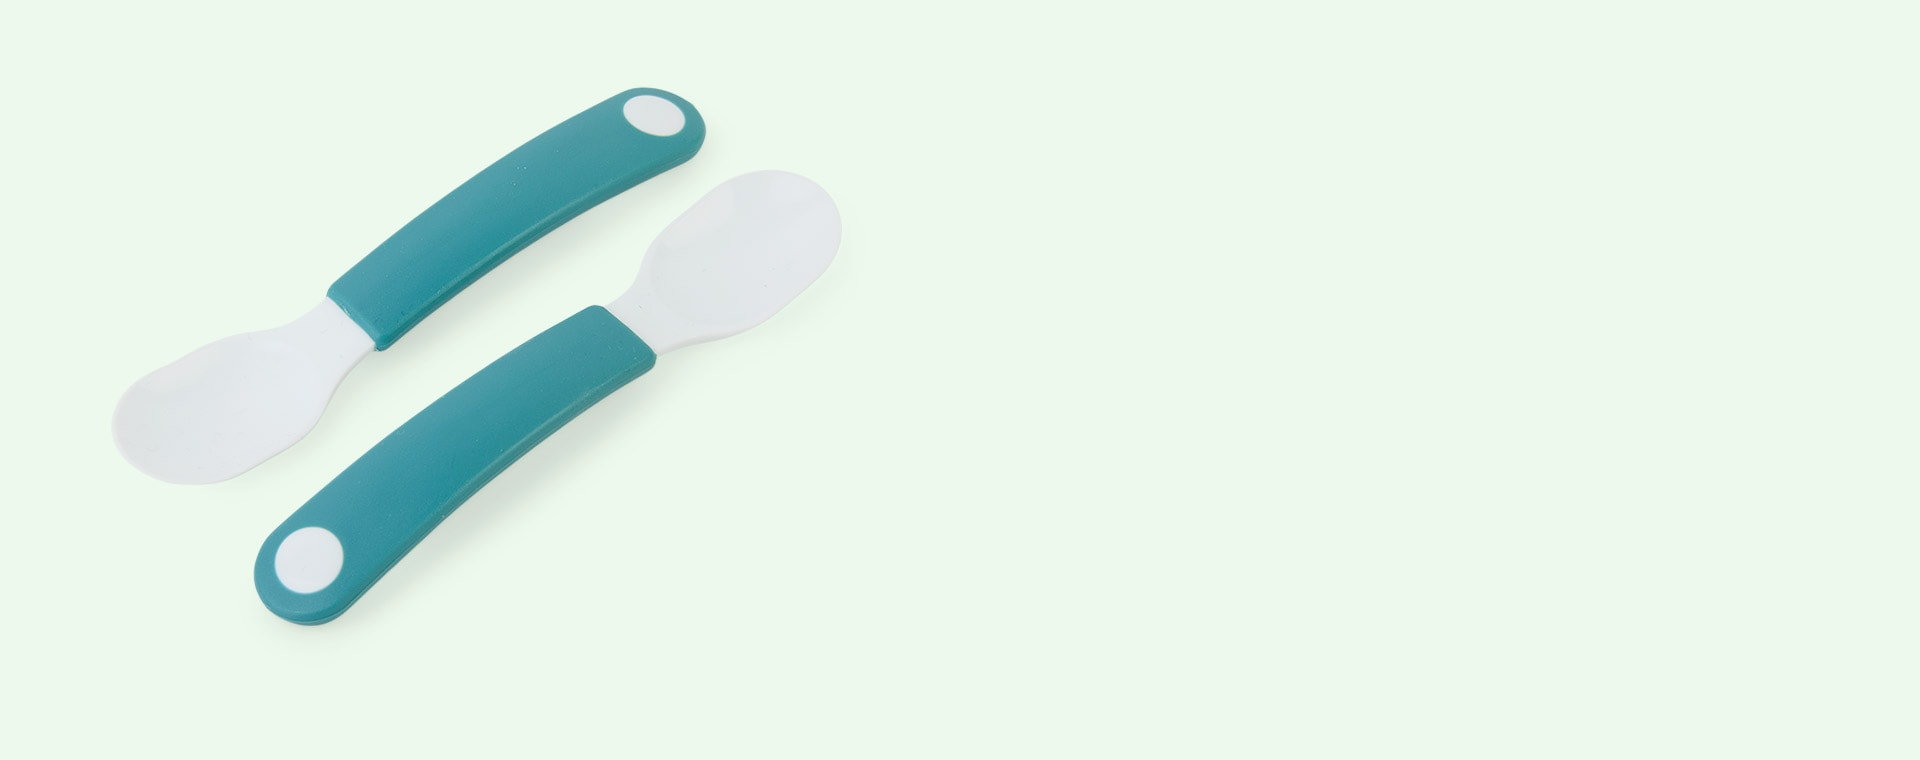 Deep Turquoise Mepal 2-Pack Trainer Spoon Set Mio